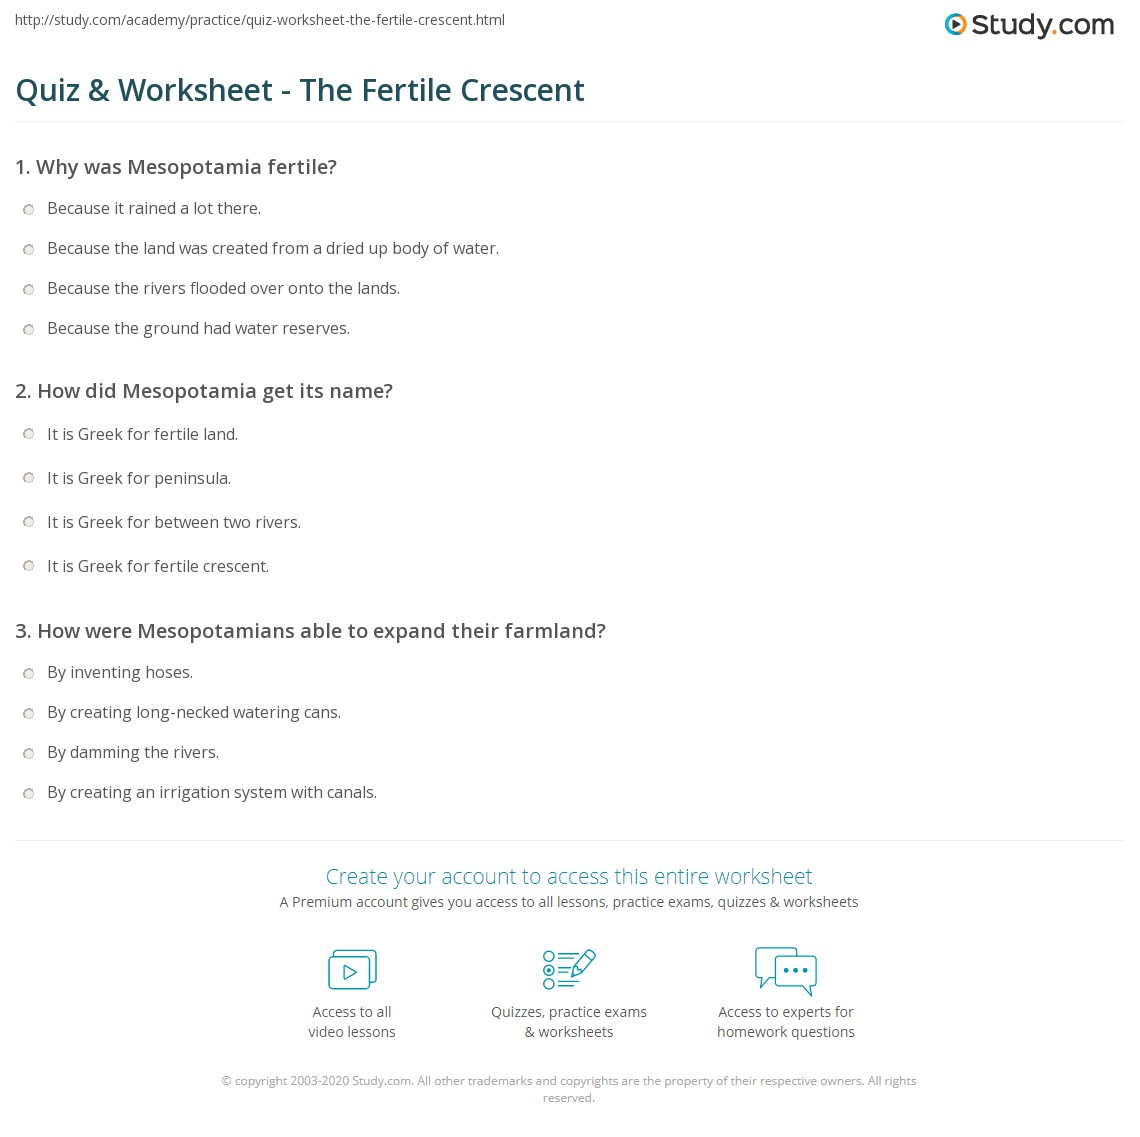 Quiz worksheet the fertile crescent study print the fertile crescent cradle of civilization worksheet fandeluxe Choice Image